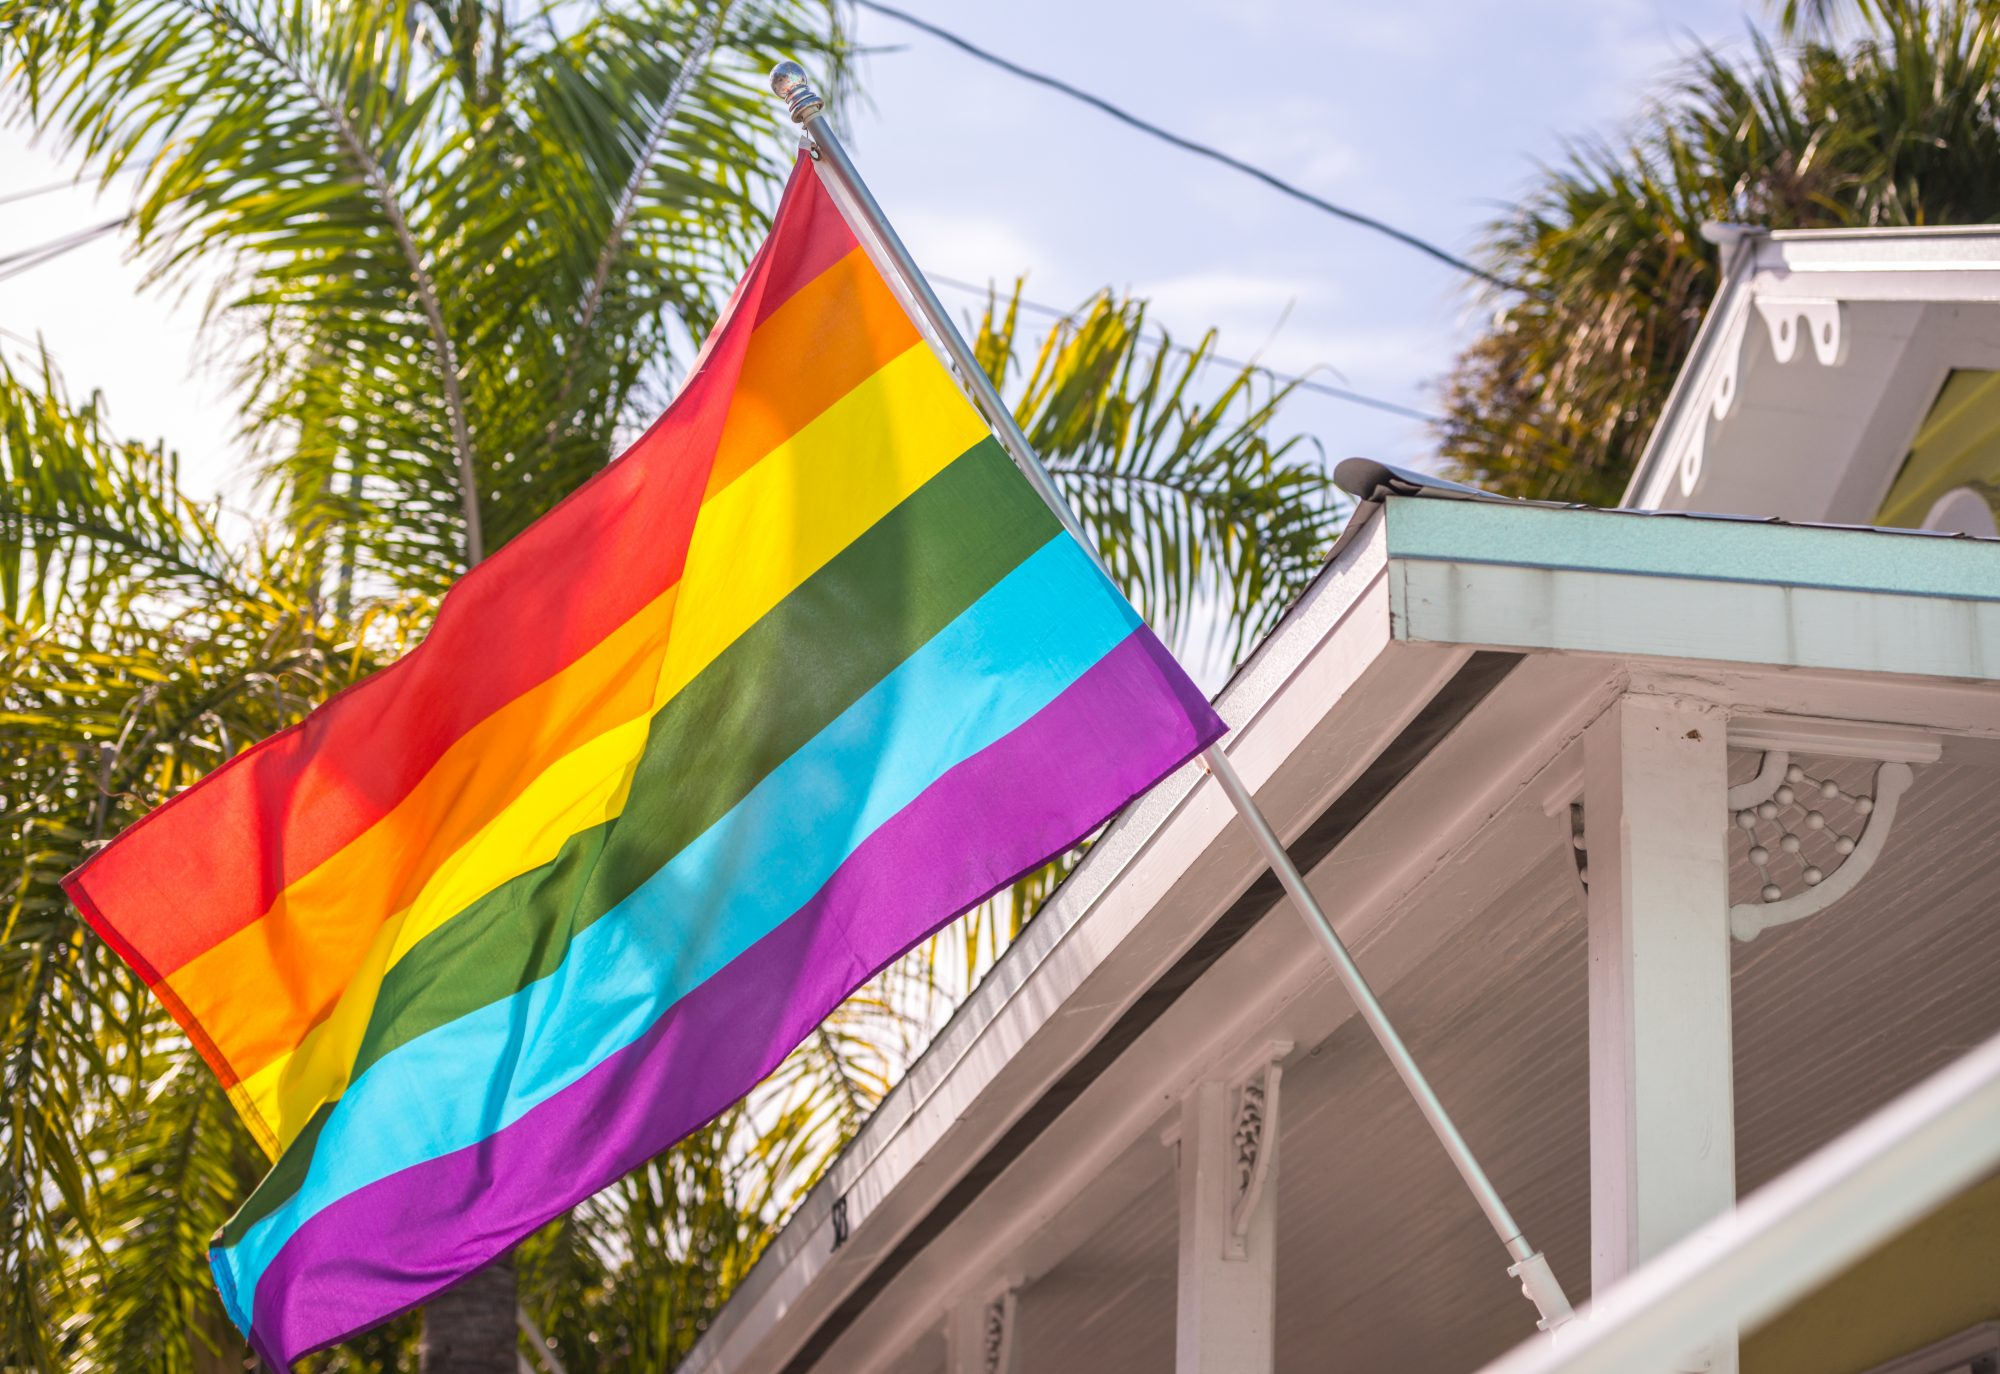 Home to an active and fun-loving LGBTQ community, Key West is a great place to check out a drag queen show or two. On Duval Street, talented divas perform nightly shows at Aqua Nightclub, La Te Da, and 801 Bourbon Bar.